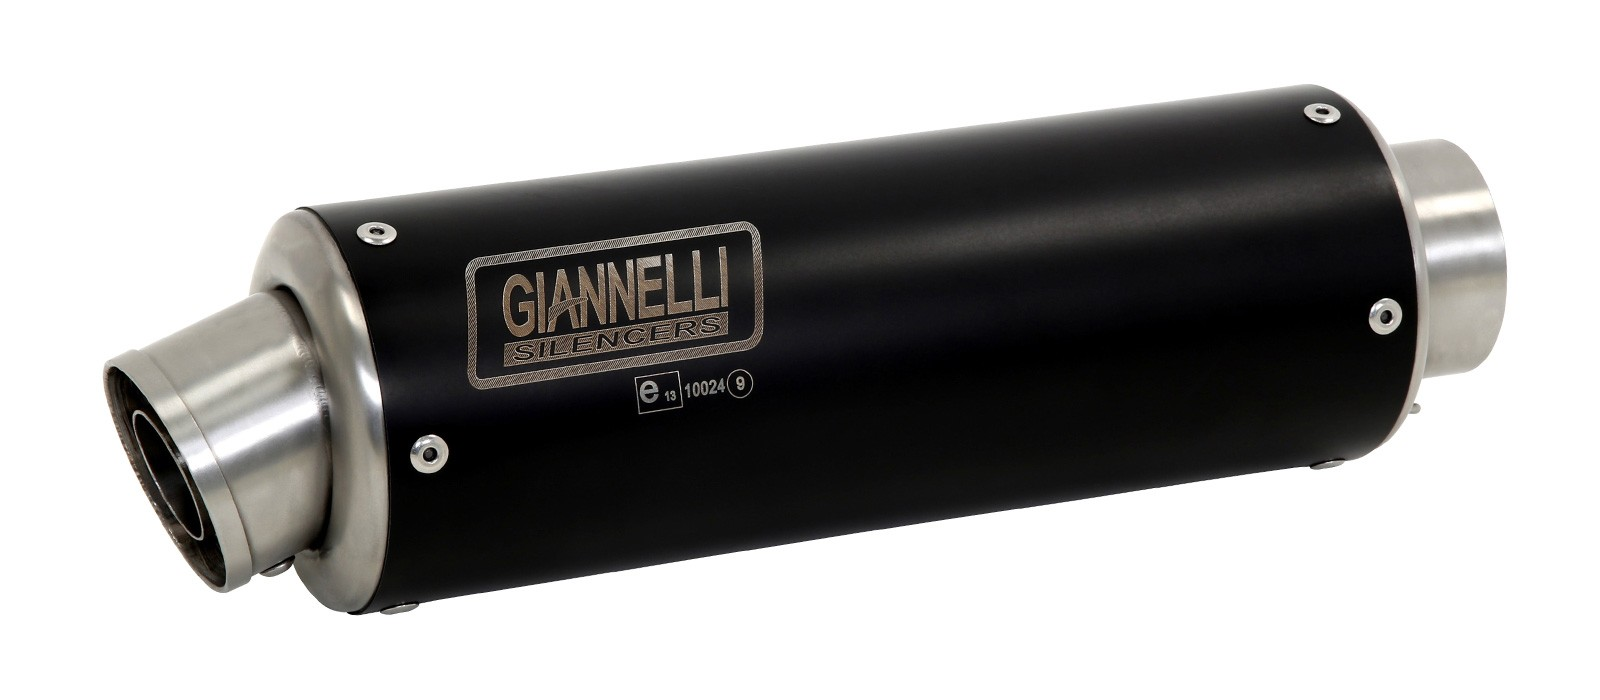 ESCAPES GIANNELLI YAMAHA - Sistema completo in nicrom blak X-PRO Yamaha XSR 700 Giannelli 73565XPI -